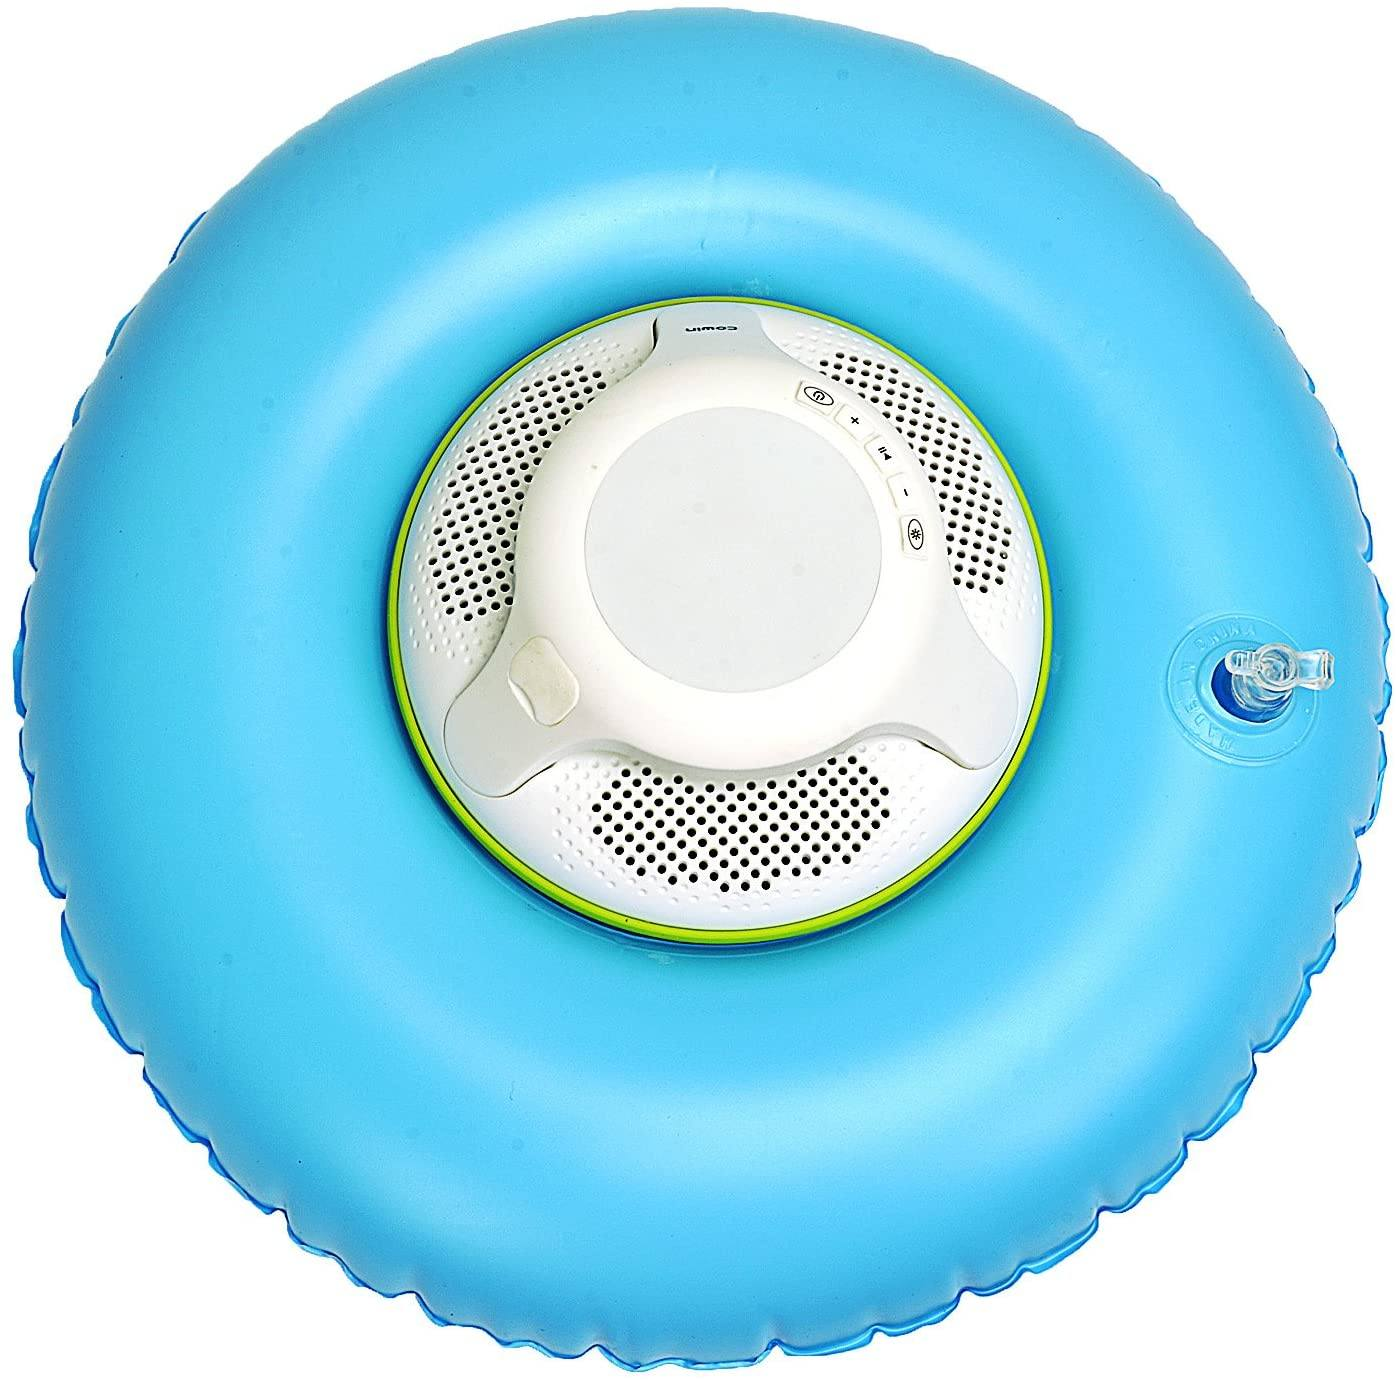 Cowin Float Small Swin Ring for Cowin Swimmer Floating Waterproof IPX7 Bluetooth Speaker Cowinaudio